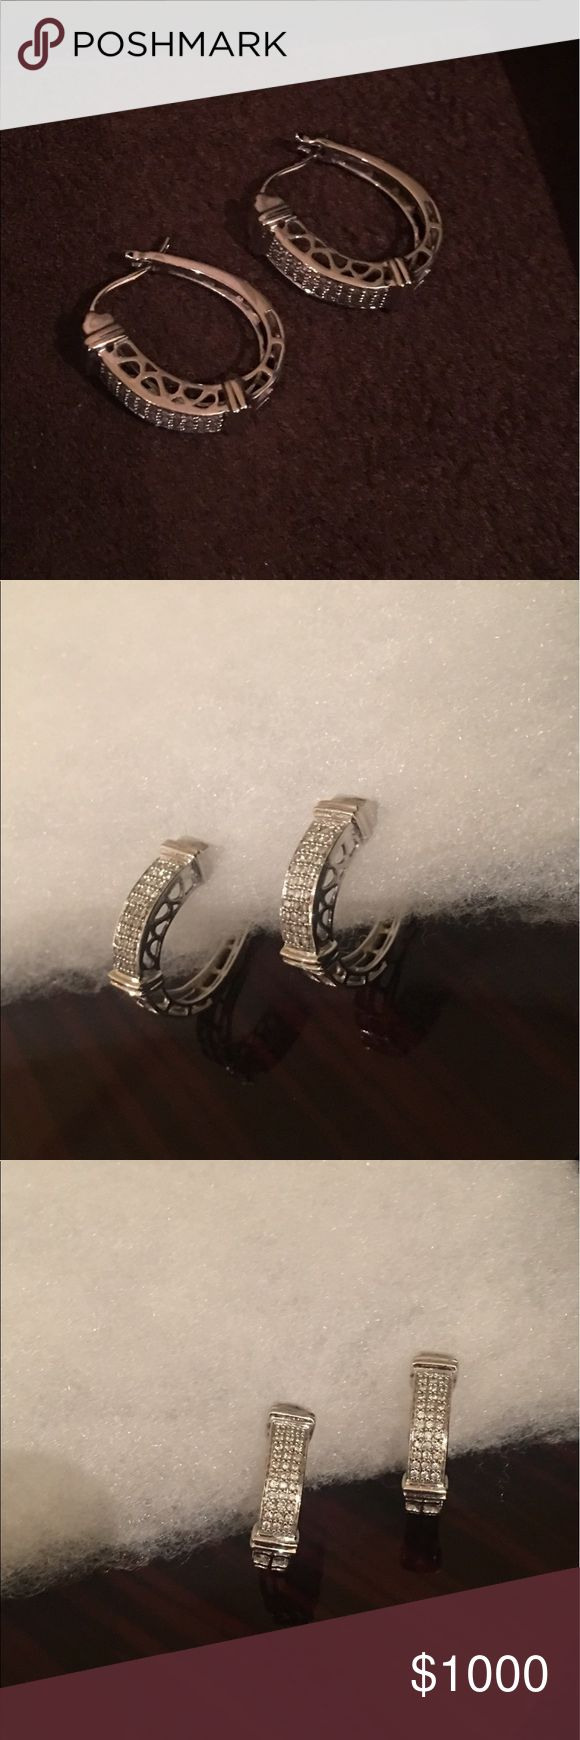 Diamond earrings✨ 14K white gold. Used few times. No scratches, no missing 💎, less than 1 carat. Jewelry Earrings